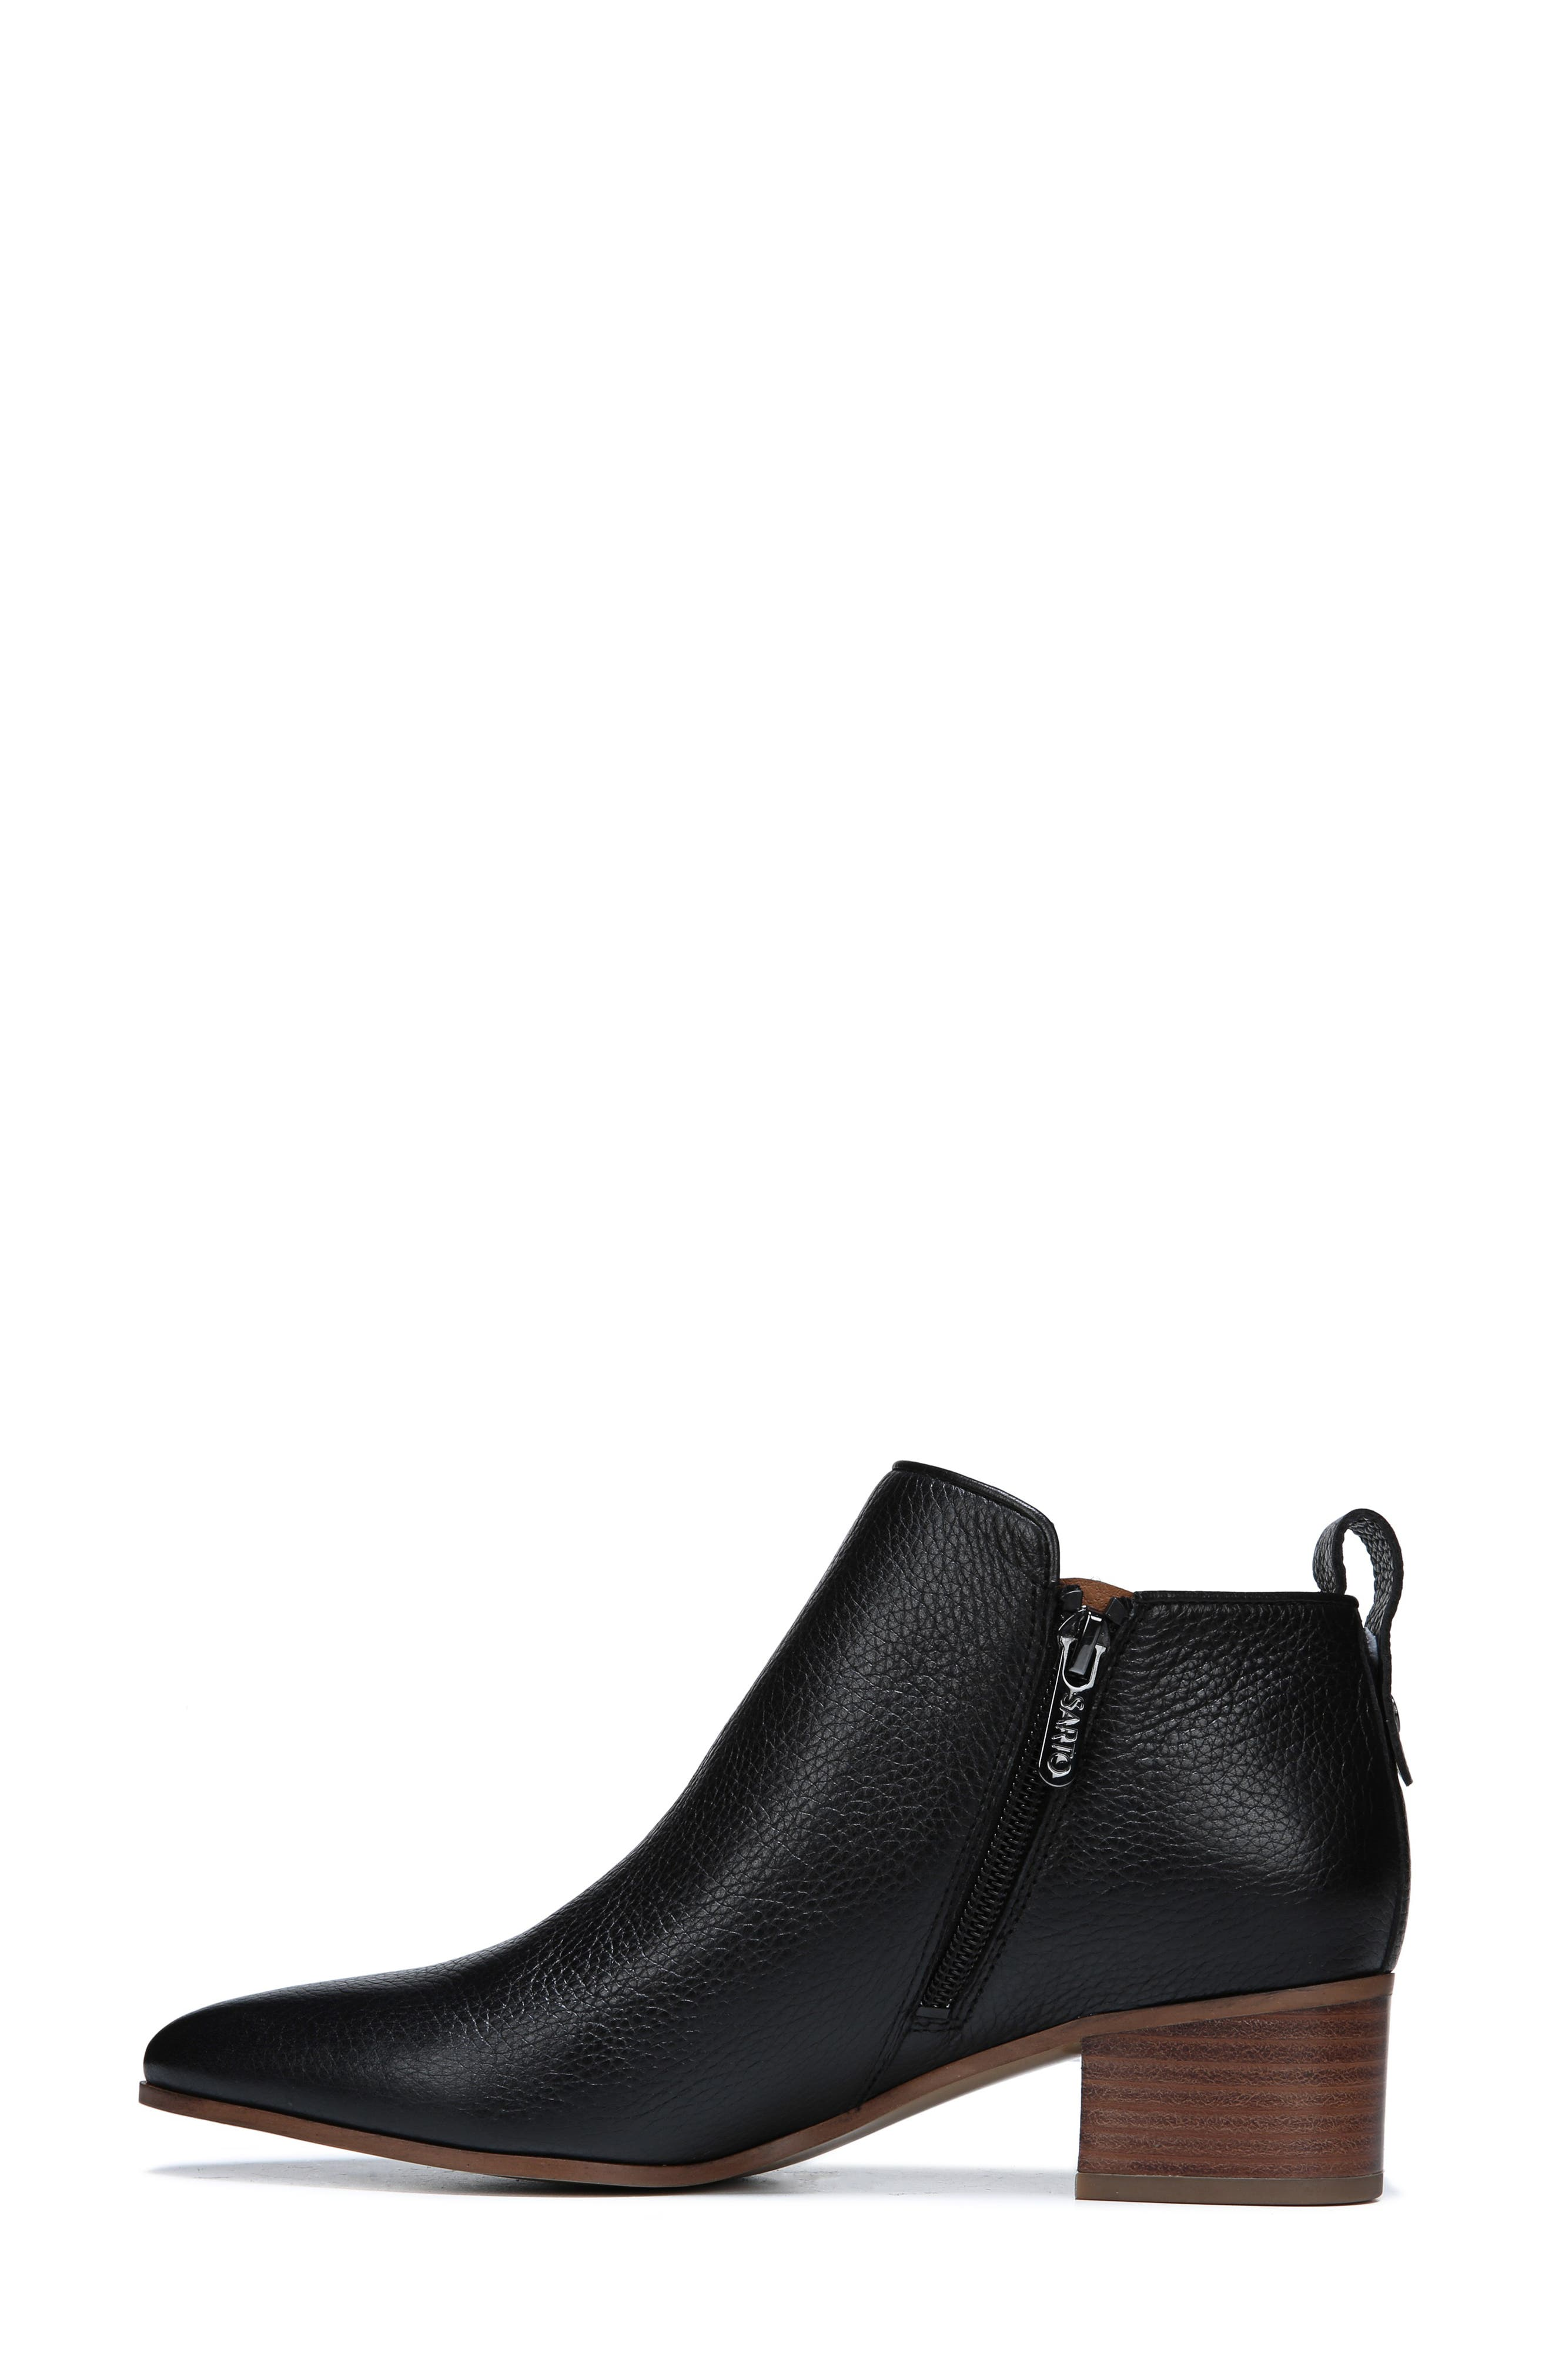 Jollie Bootie,                             Alternate thumbnail 7, color,                             BLACK LEATHER